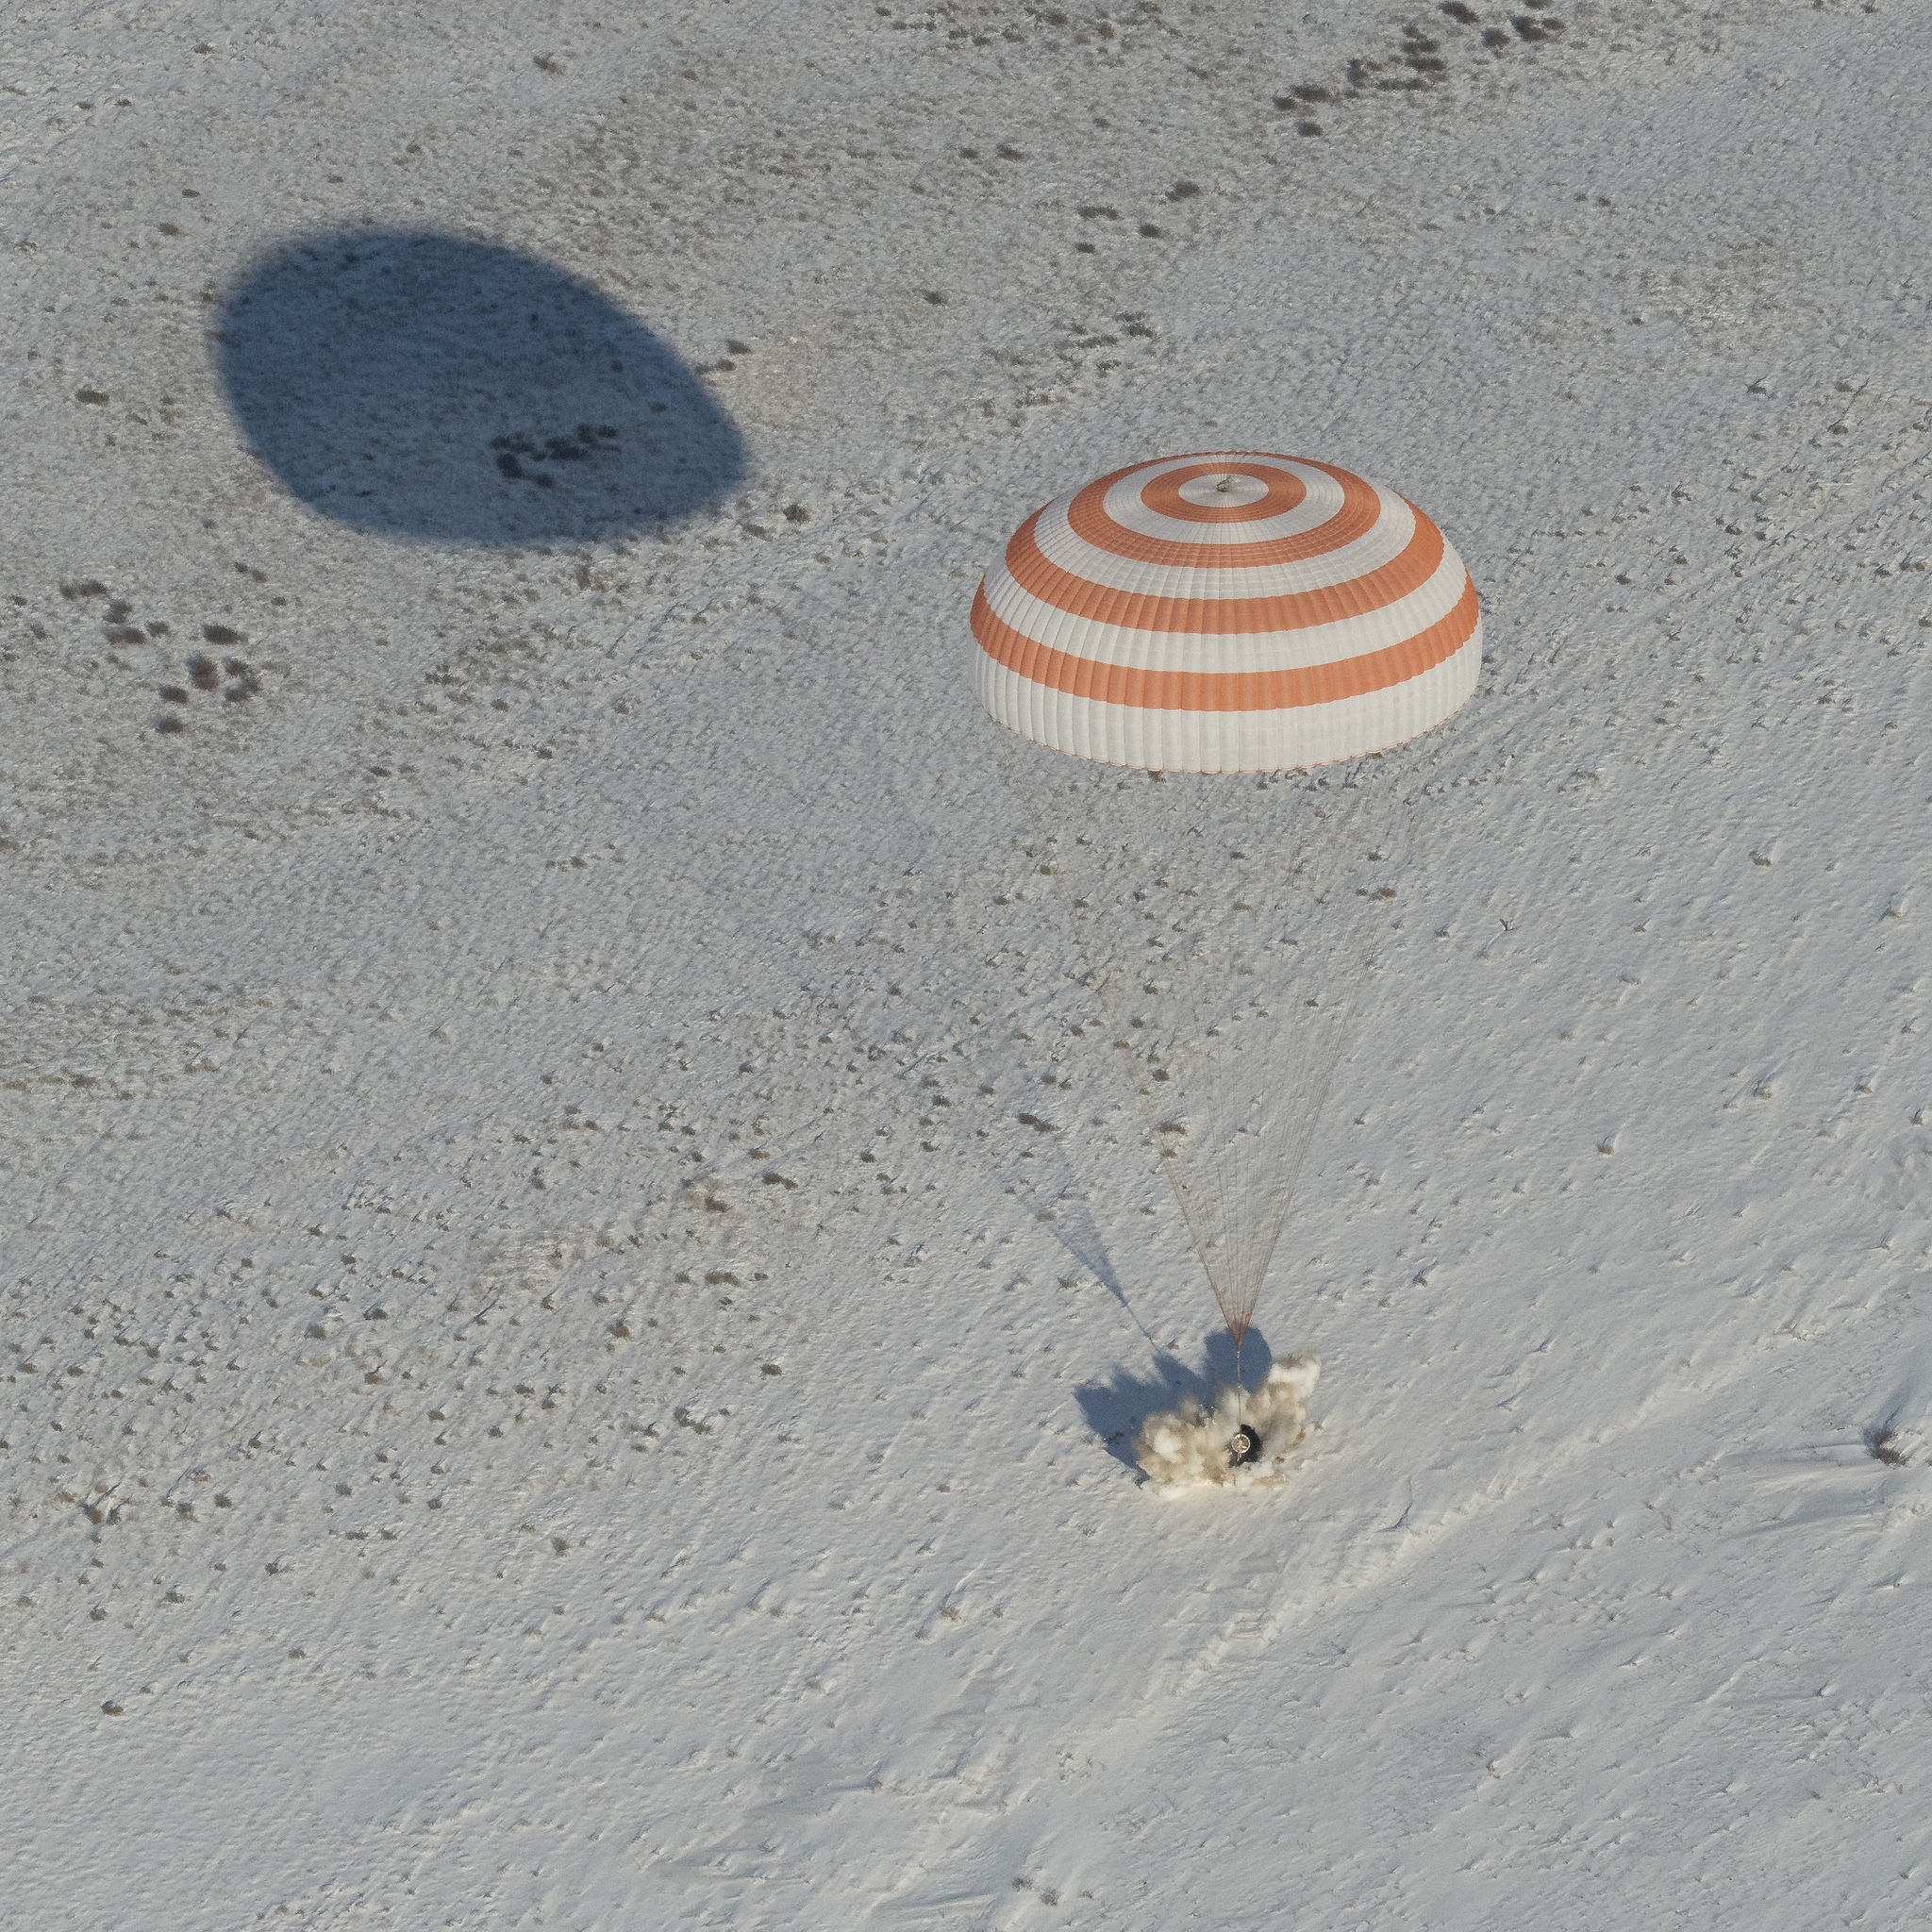 The Soyuz MS-05 capsule fires its landing jets to cushion the impact of touchdown. Credit: NASA/Bill Ingalls